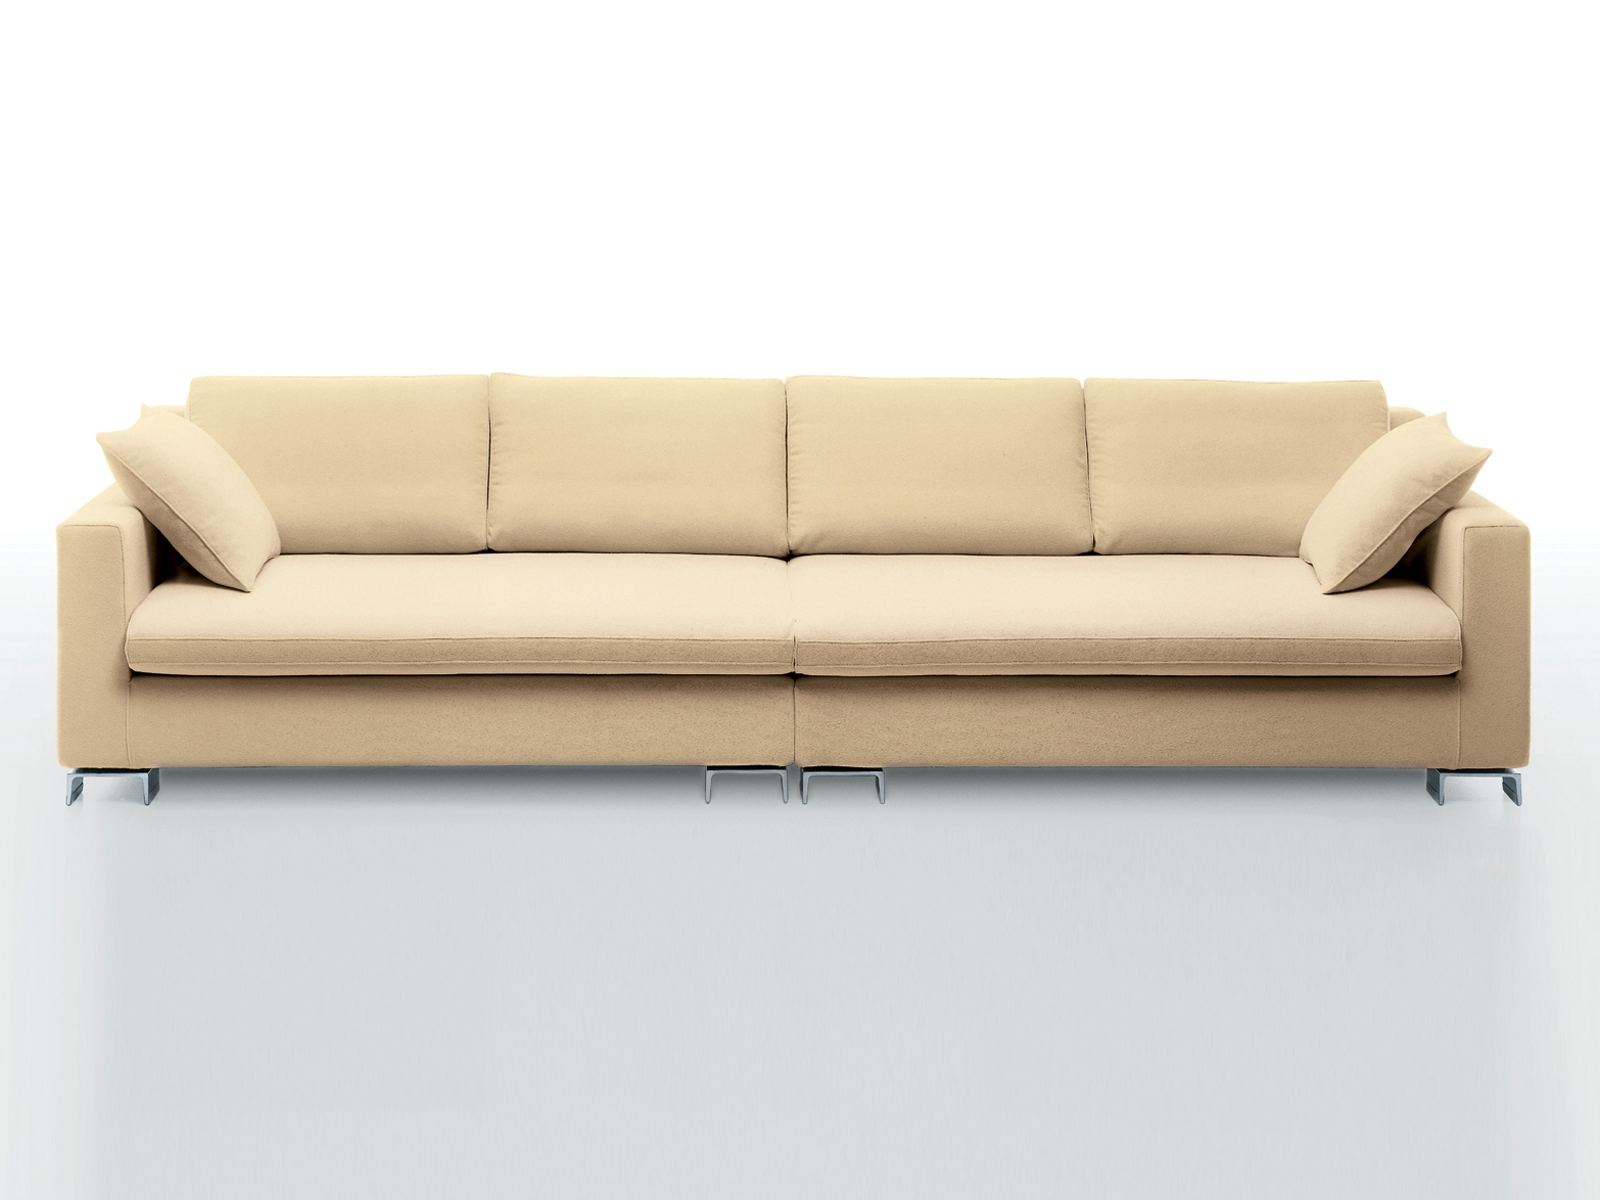 Prodotti 56574 Rel4da96f34 0747 4623 Ac21 Bcc15186034f With Four Seater Sofas (Image 12 of 15)